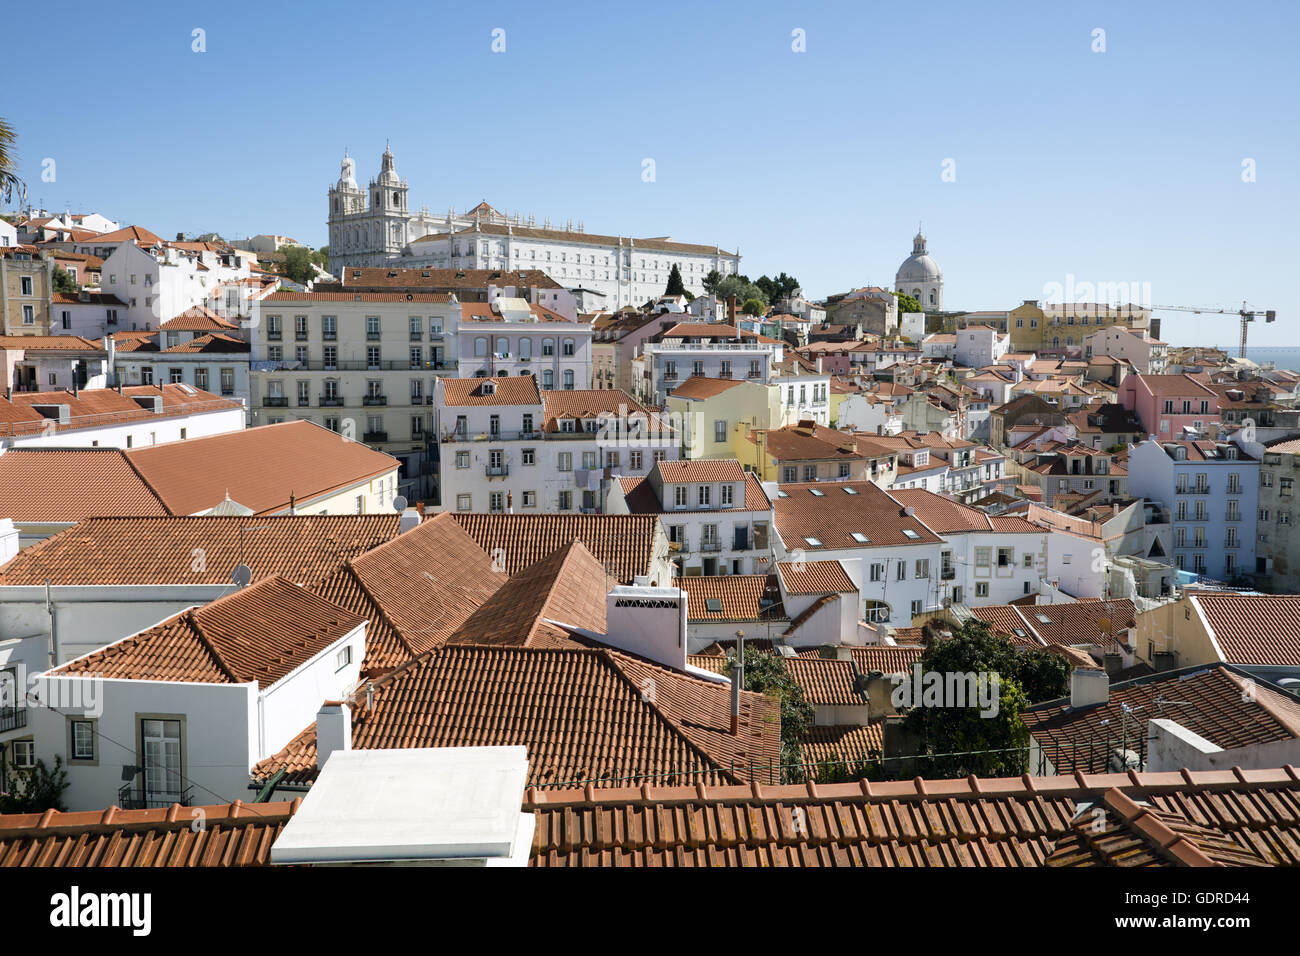 Tiled roofs of Lisbon Portugal - Stock Image